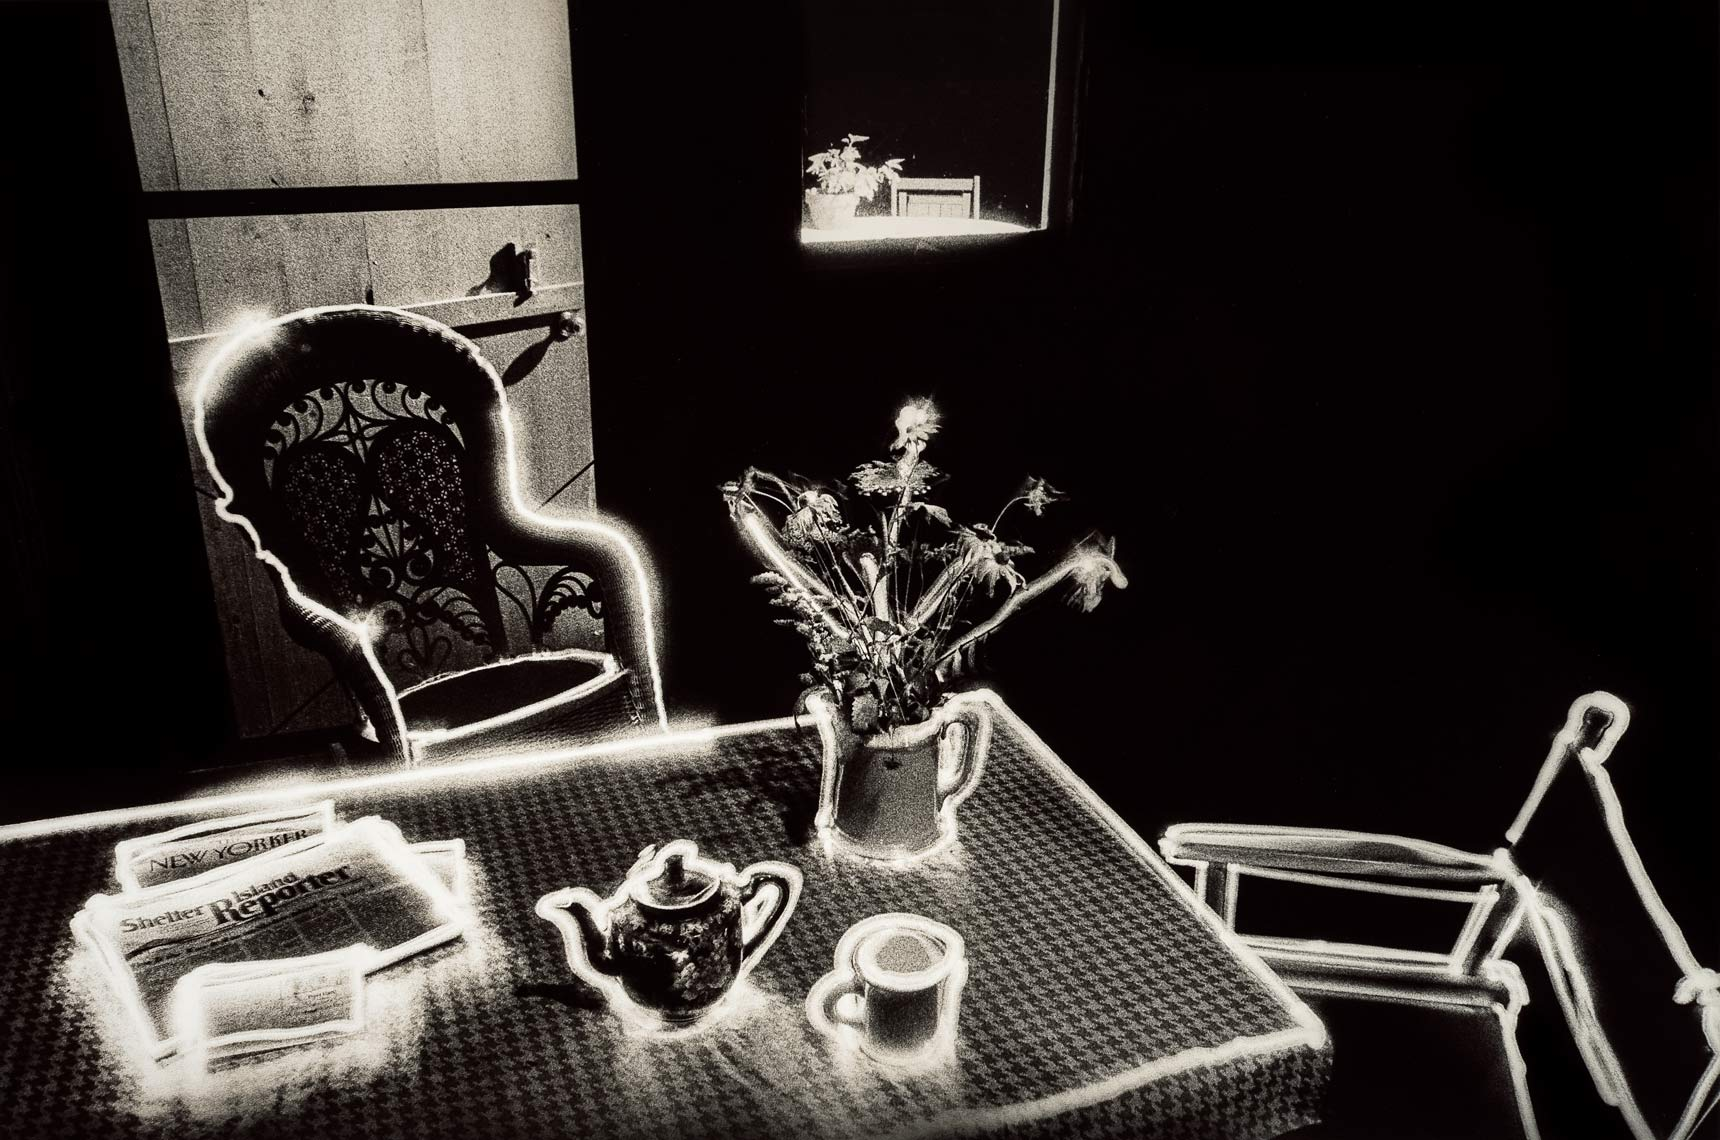 David Lebe; Summer Table, 1981, light drawing, black and white photograph